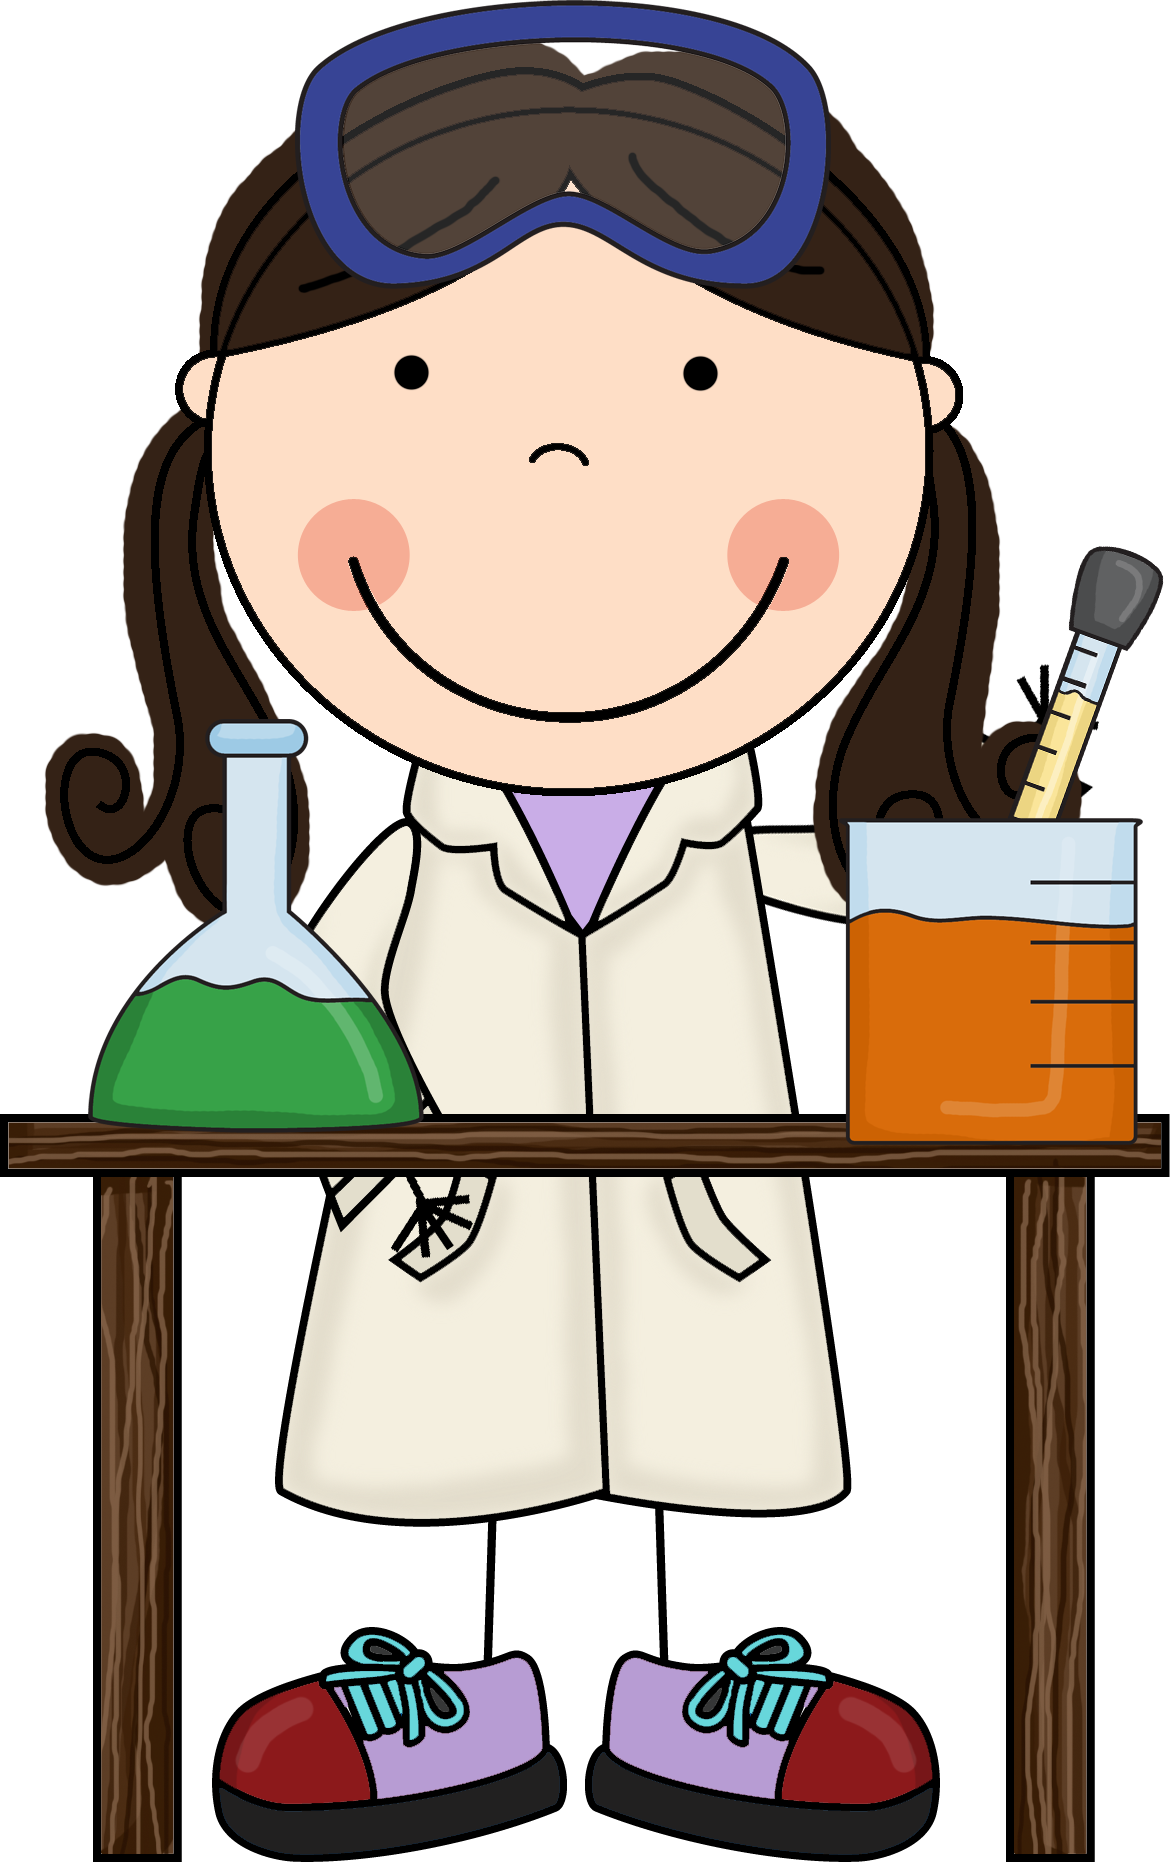 Kids with science clipart image black and white stock Success kids science clipart - ClipartFest image black and white stock